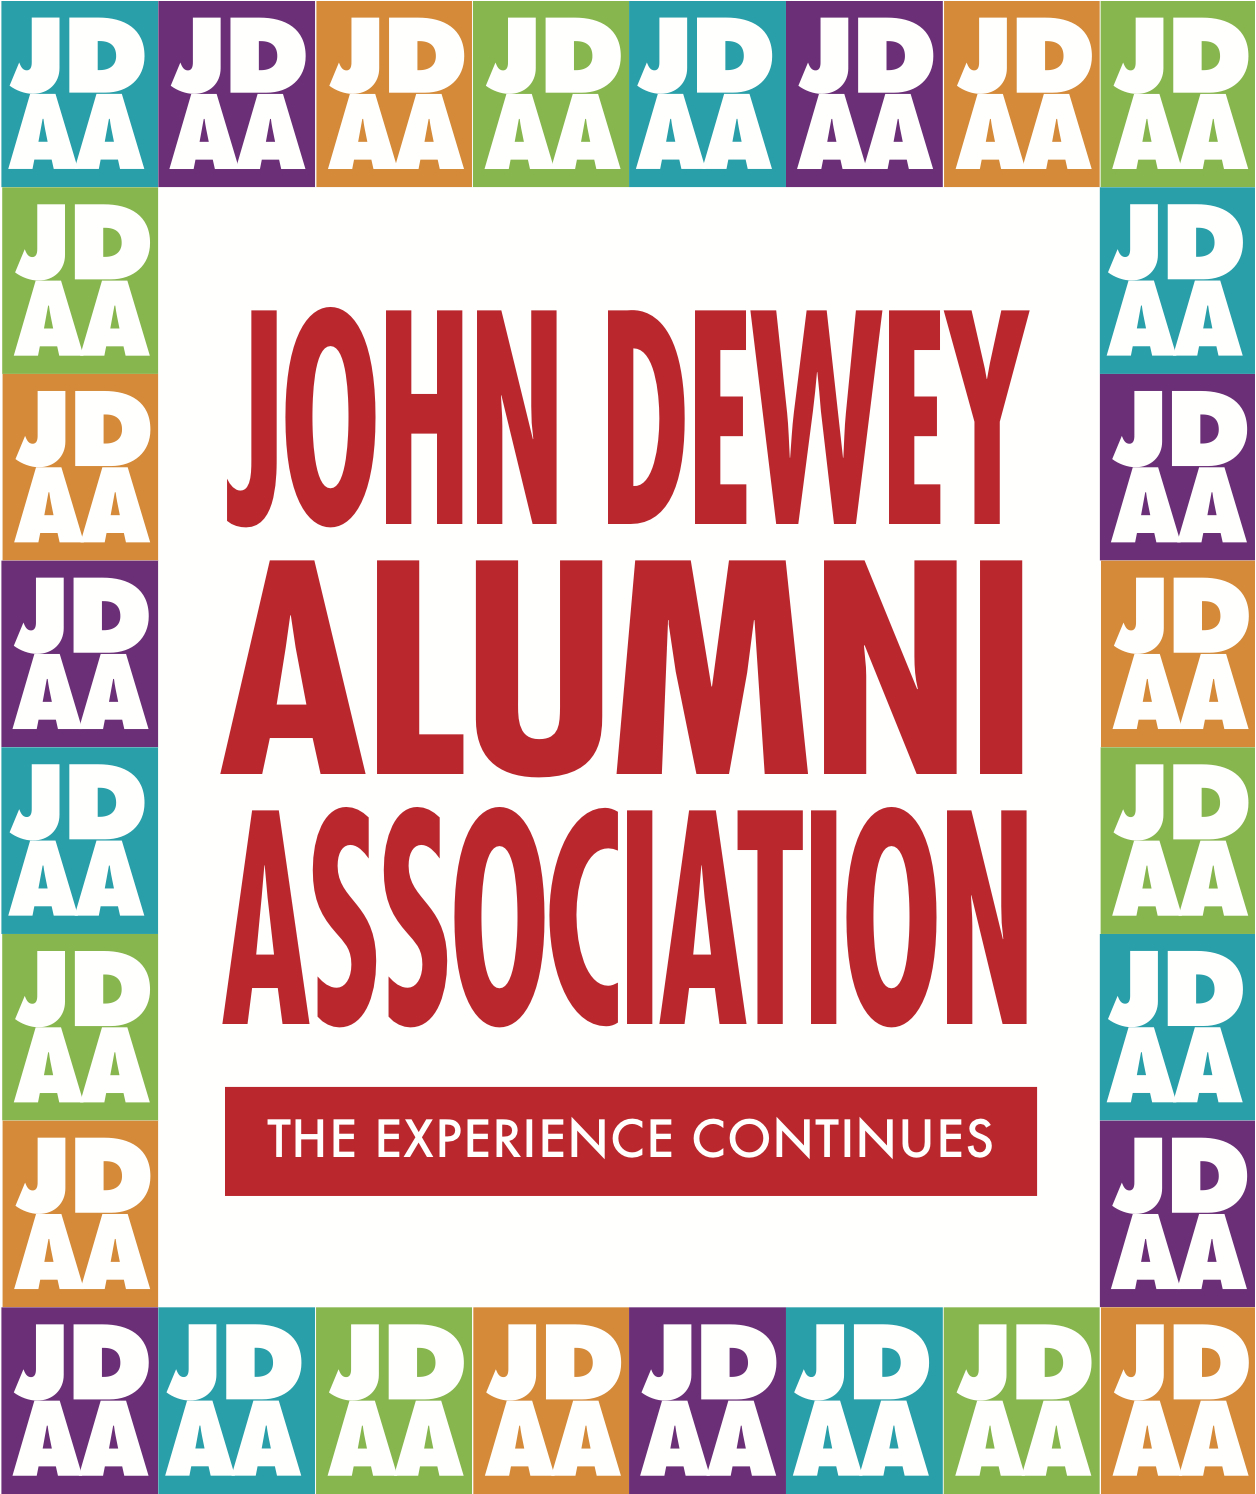 The John Dewey Alumni Association Logo